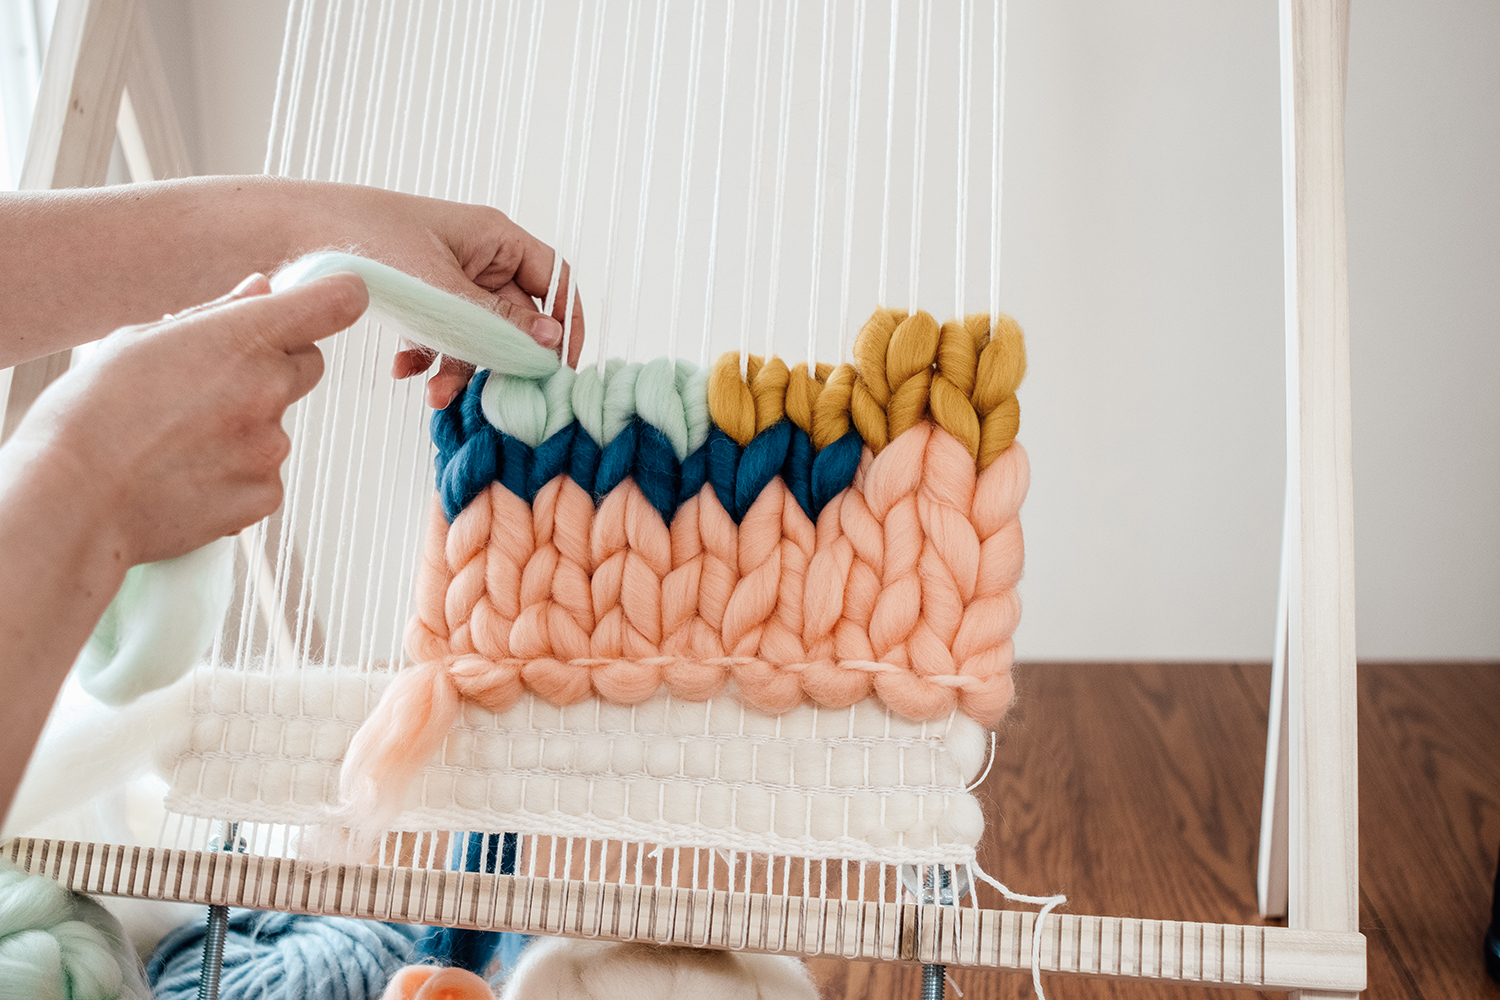 Learn how to weave with roving - Get my roving class. (4 different ways to weave with roving, plus all the tips to keep it as smooth and fluffy as possible!) CLICK HERE.